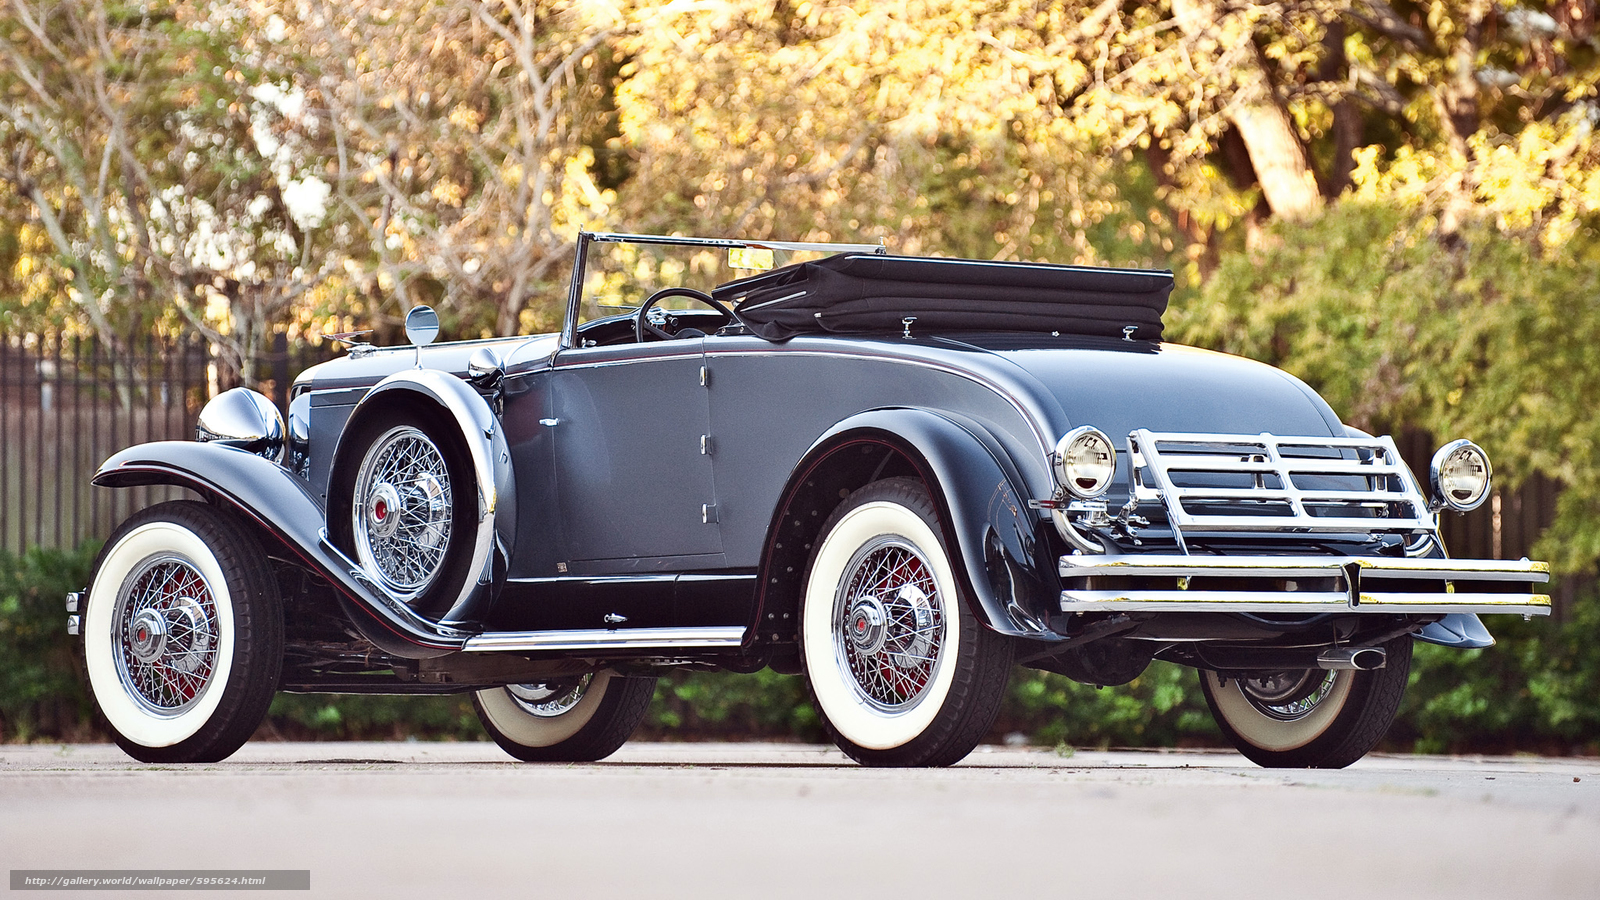 duesenberg vintage car wallpapers - photo #25